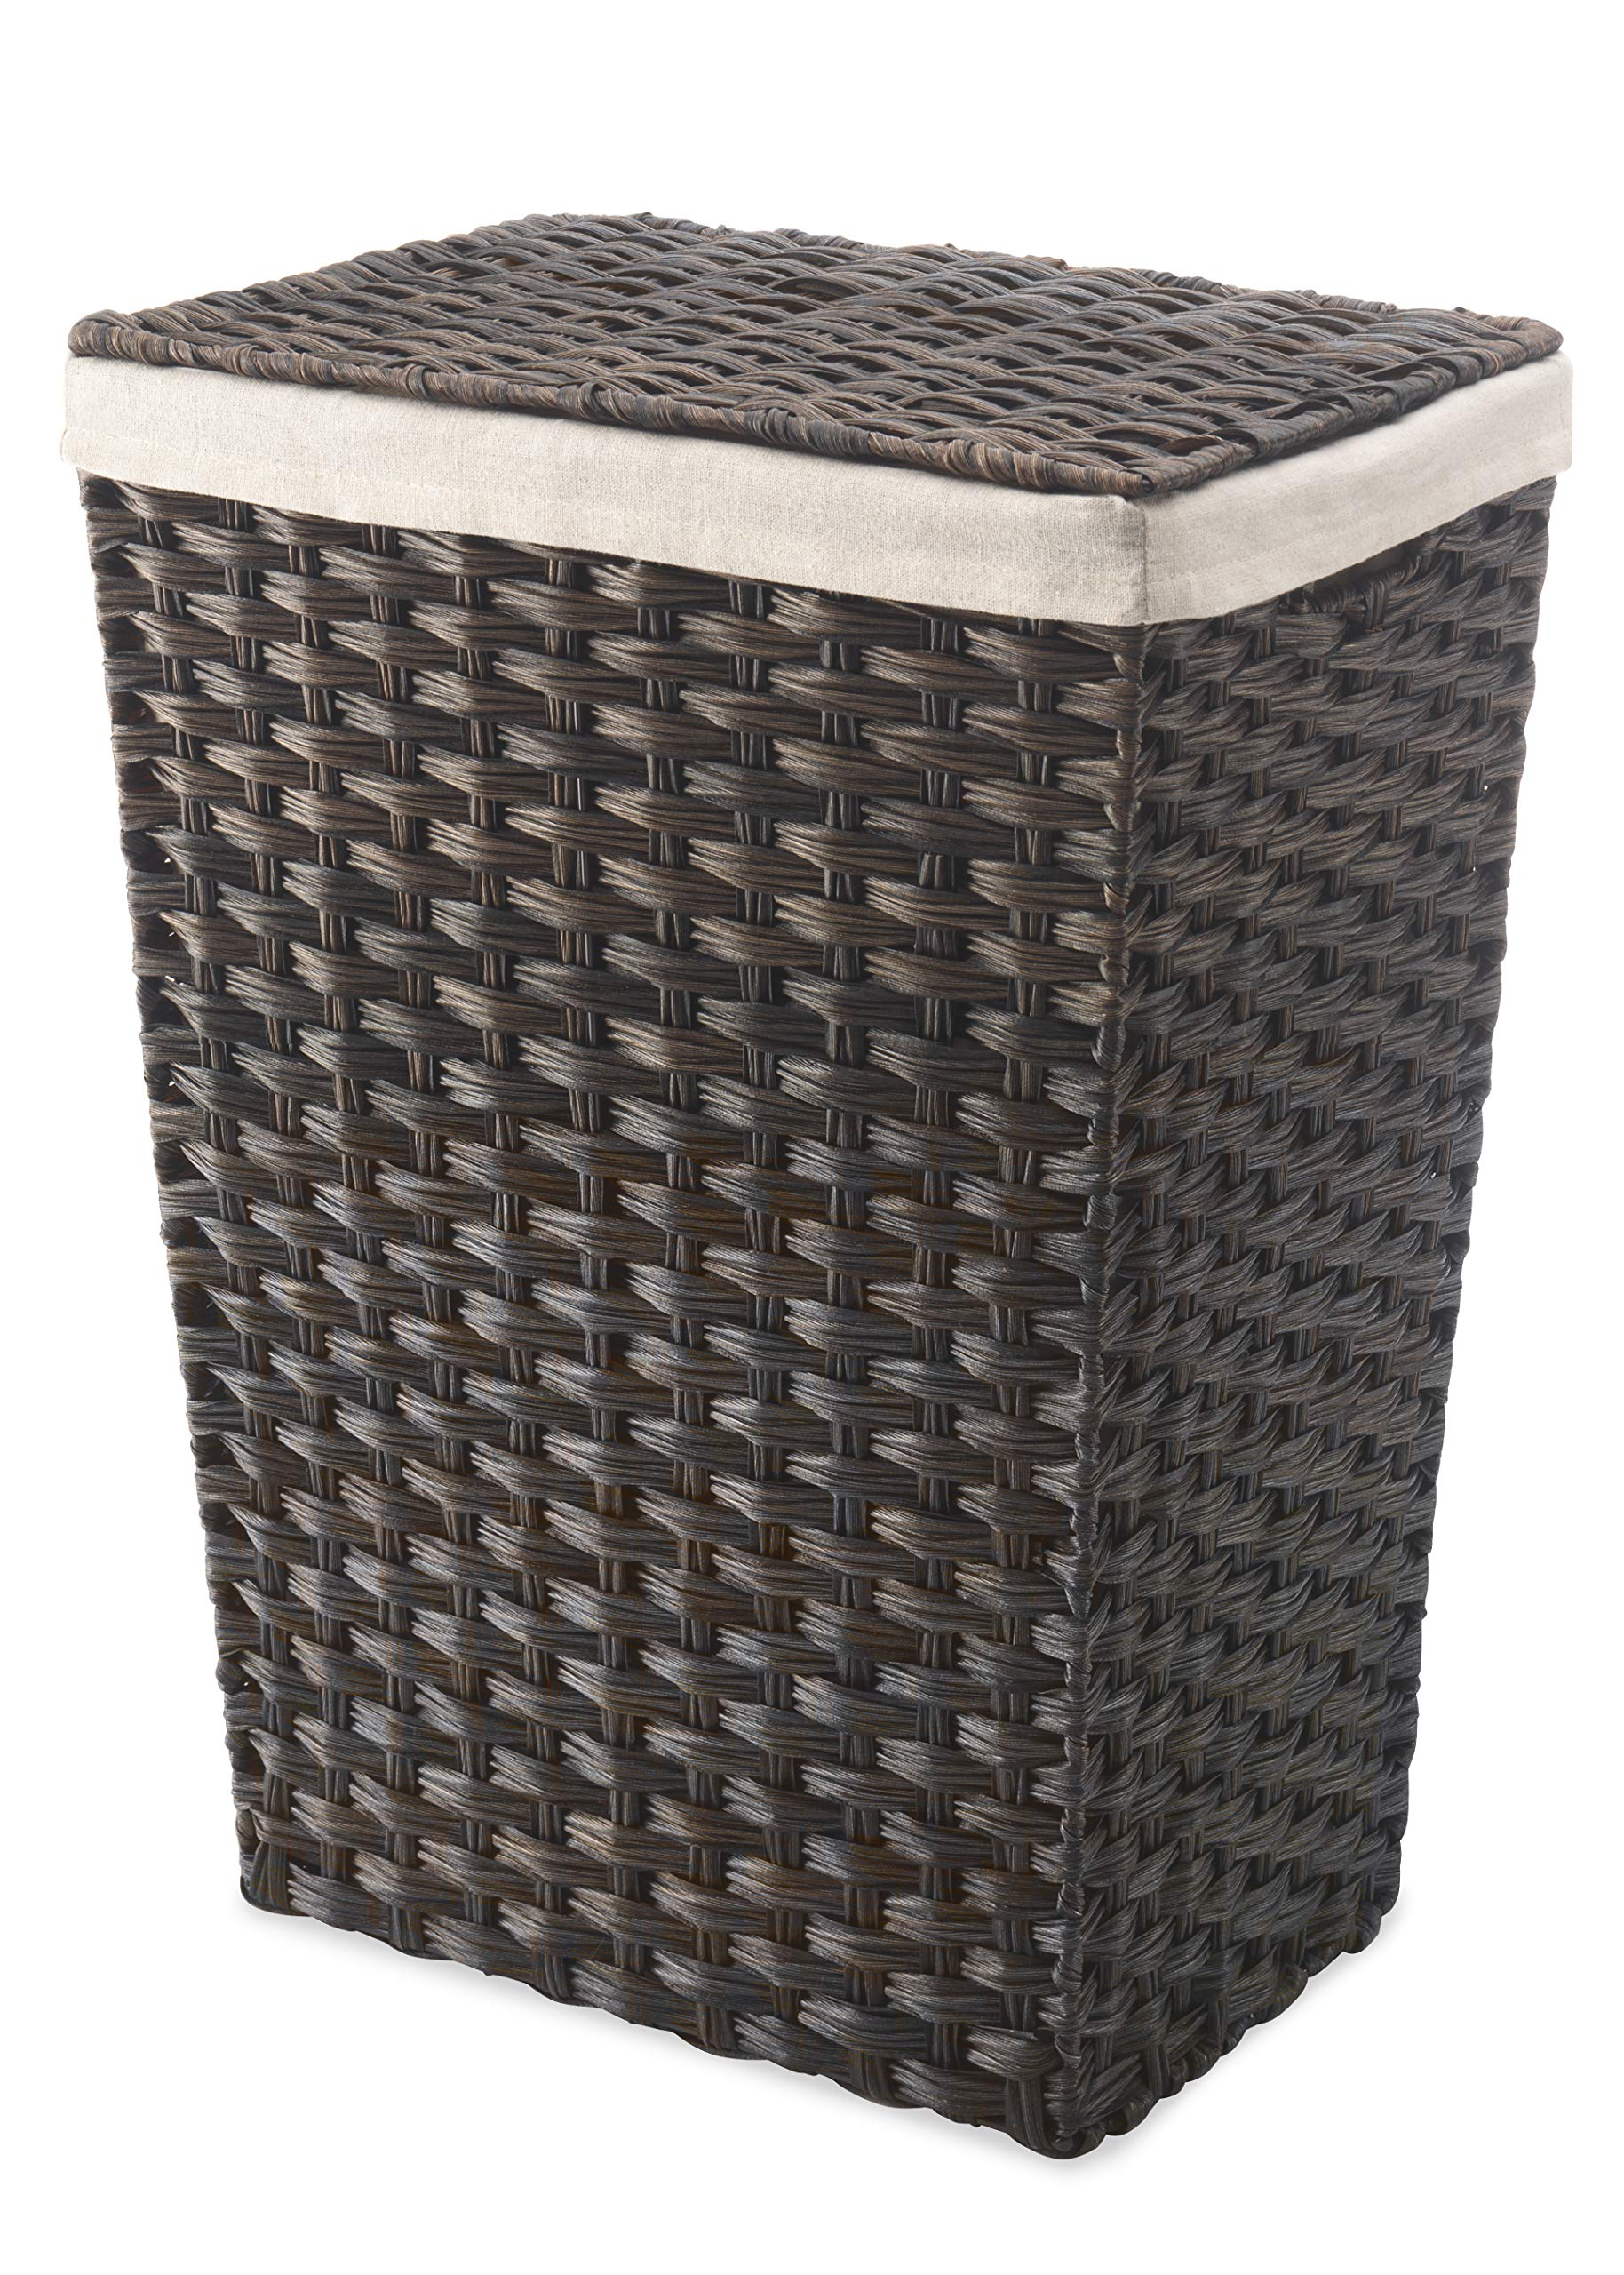 Whitmor Rattique Laundry Hamper with Lid and Removable Liner - Espresso by Whitmor